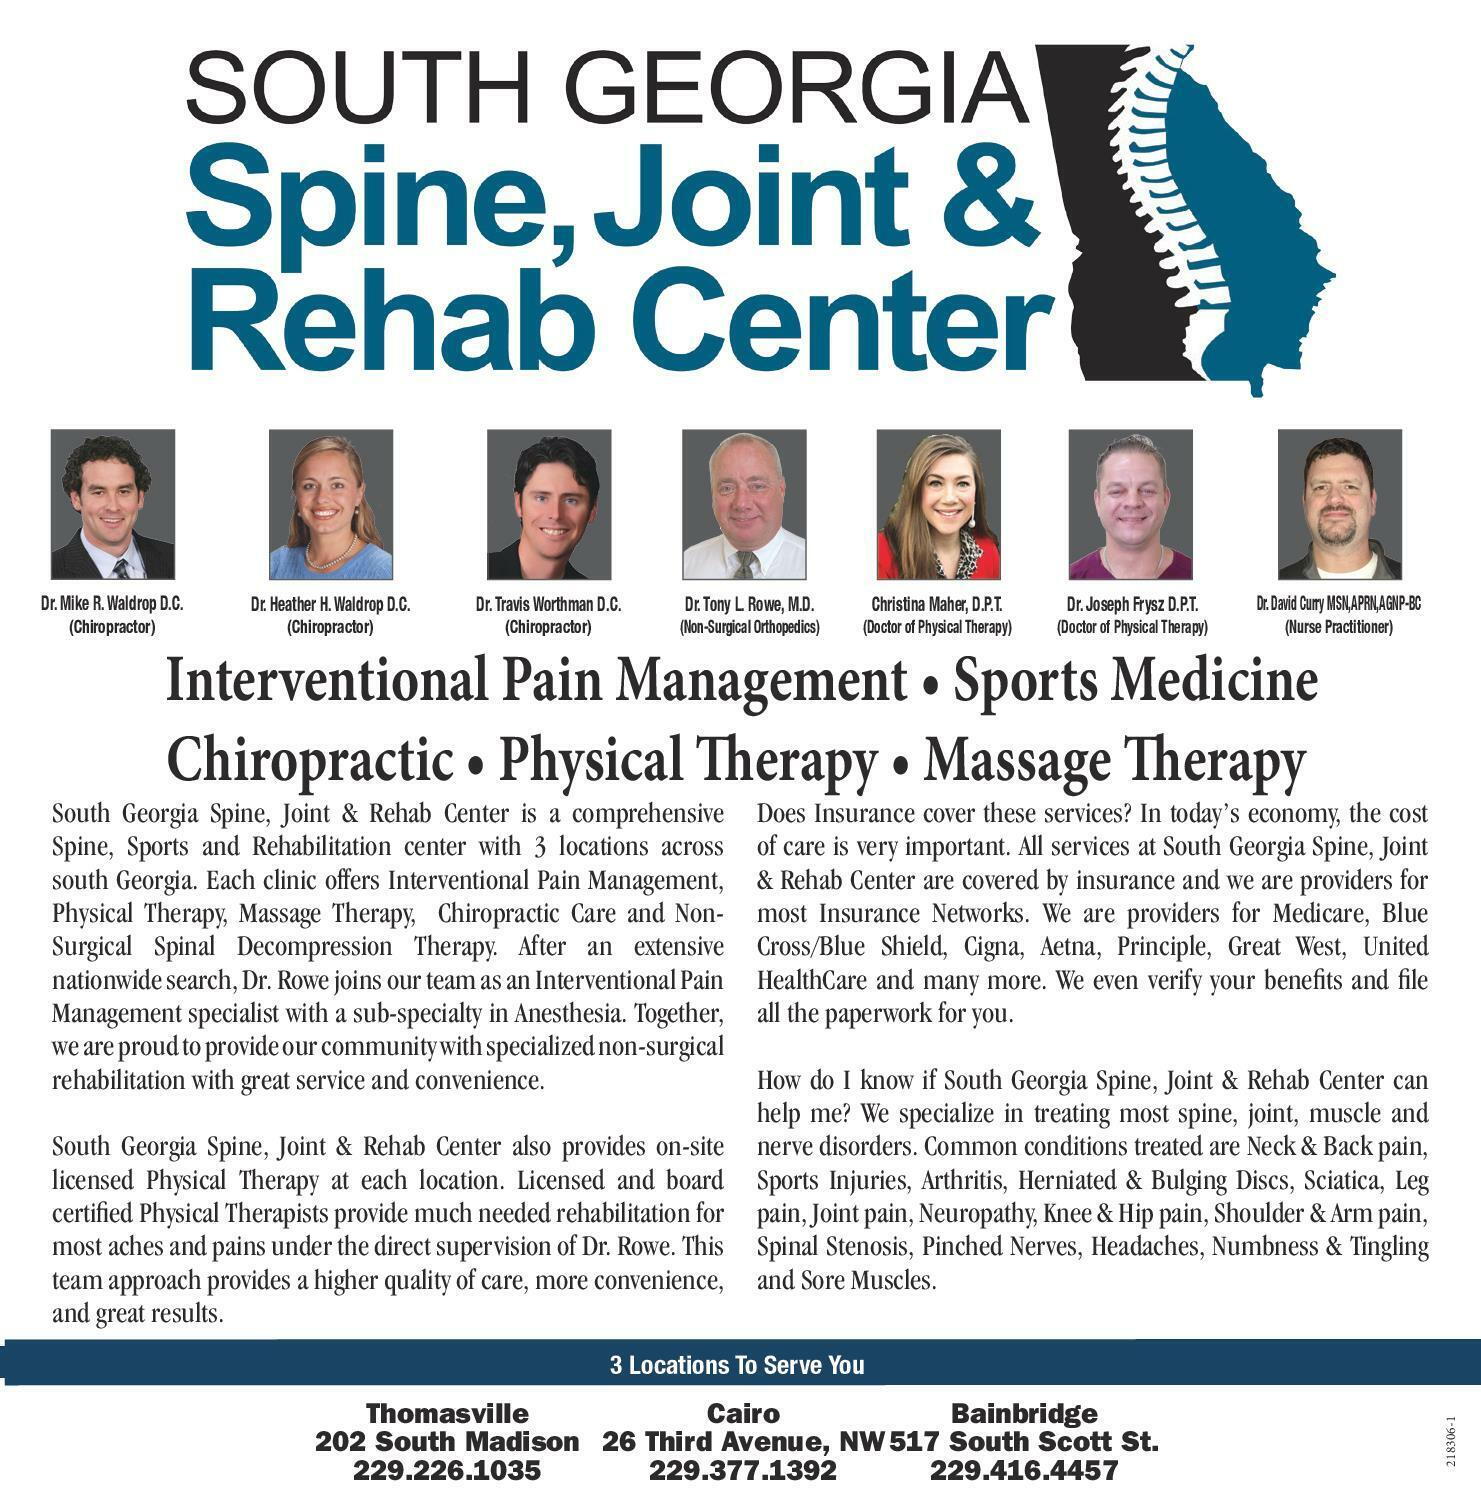 SOUTH GEORGIA Spine, Joint & Rehab Center